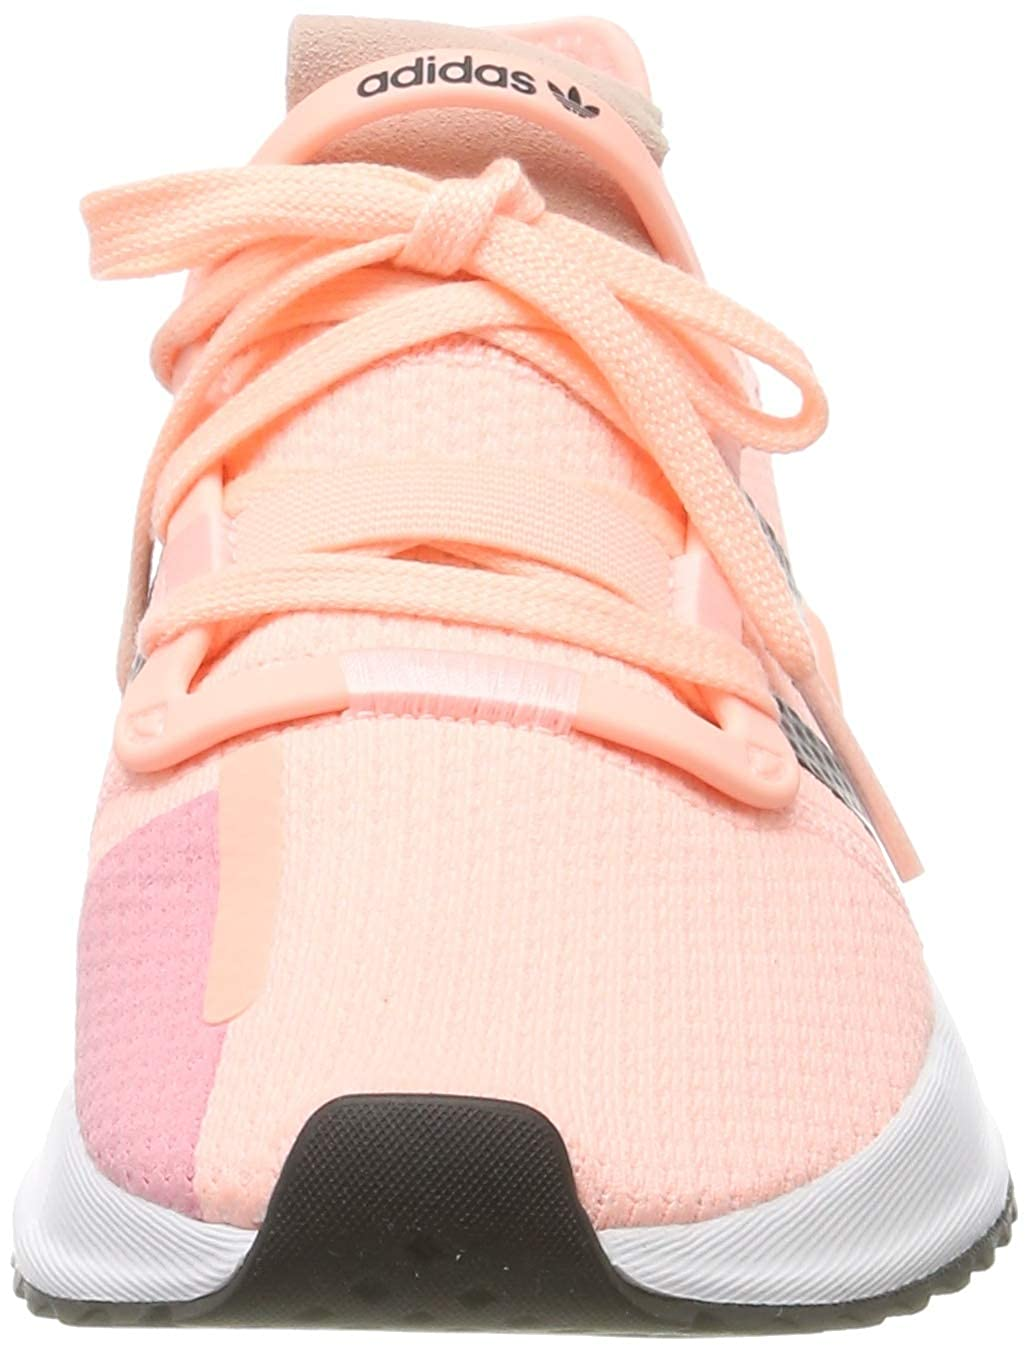 adidas U_Path Run W, Chaussures de Running Femme Multicolore (Clear Orange/Core Black/Ftwr White G27996)